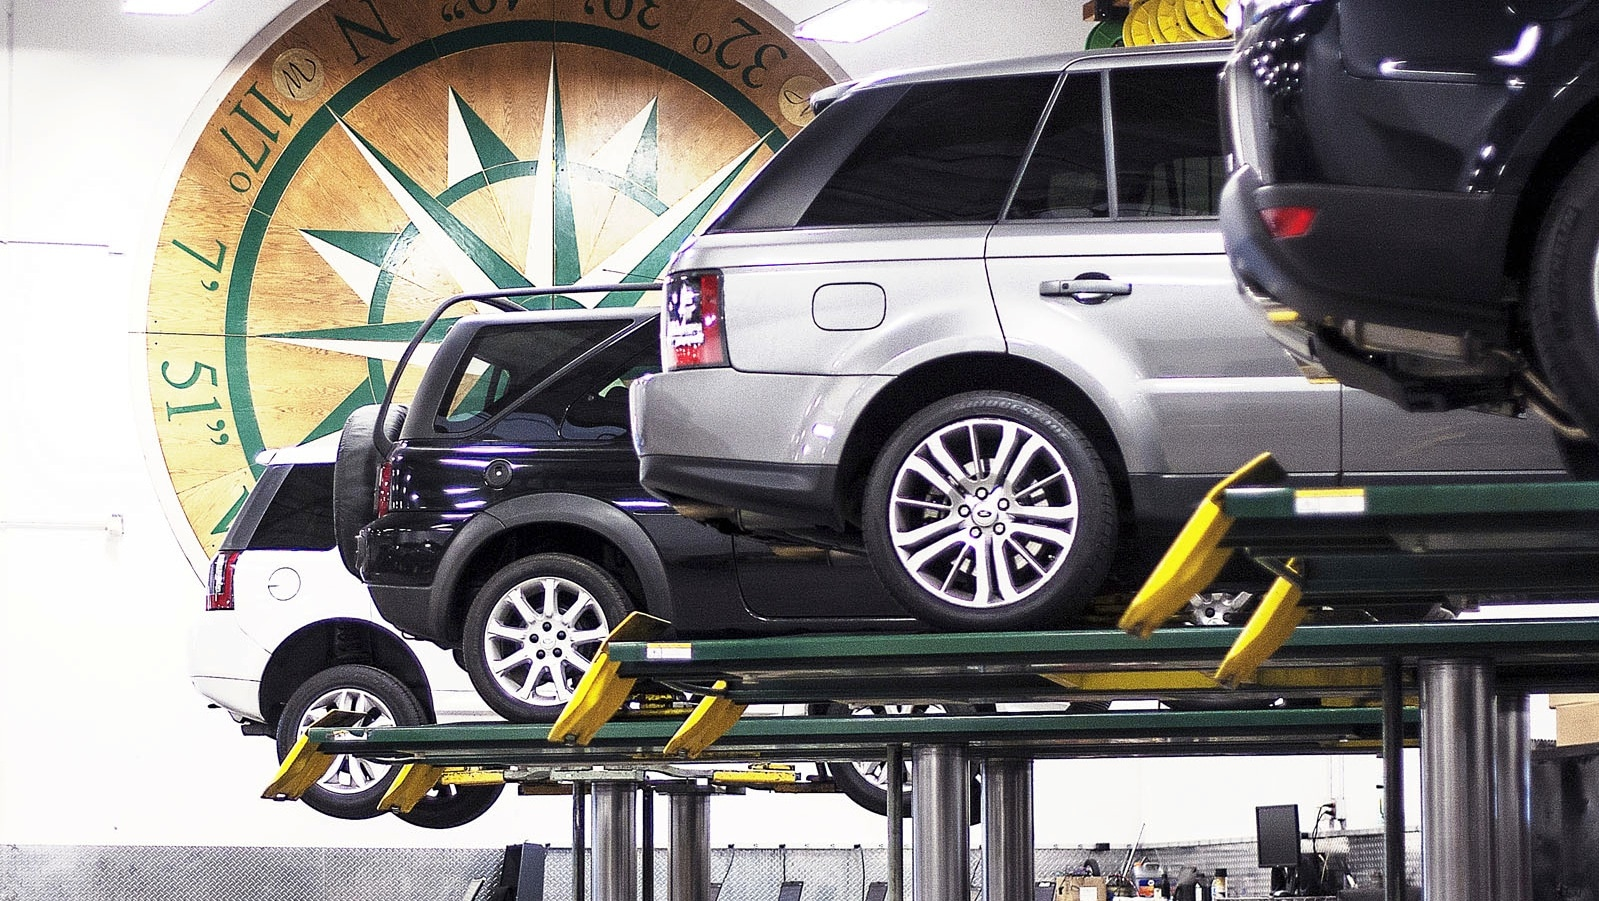 Range Rover Service, San Diego, Vehicles On Rack Photo - Land Rover San Diego